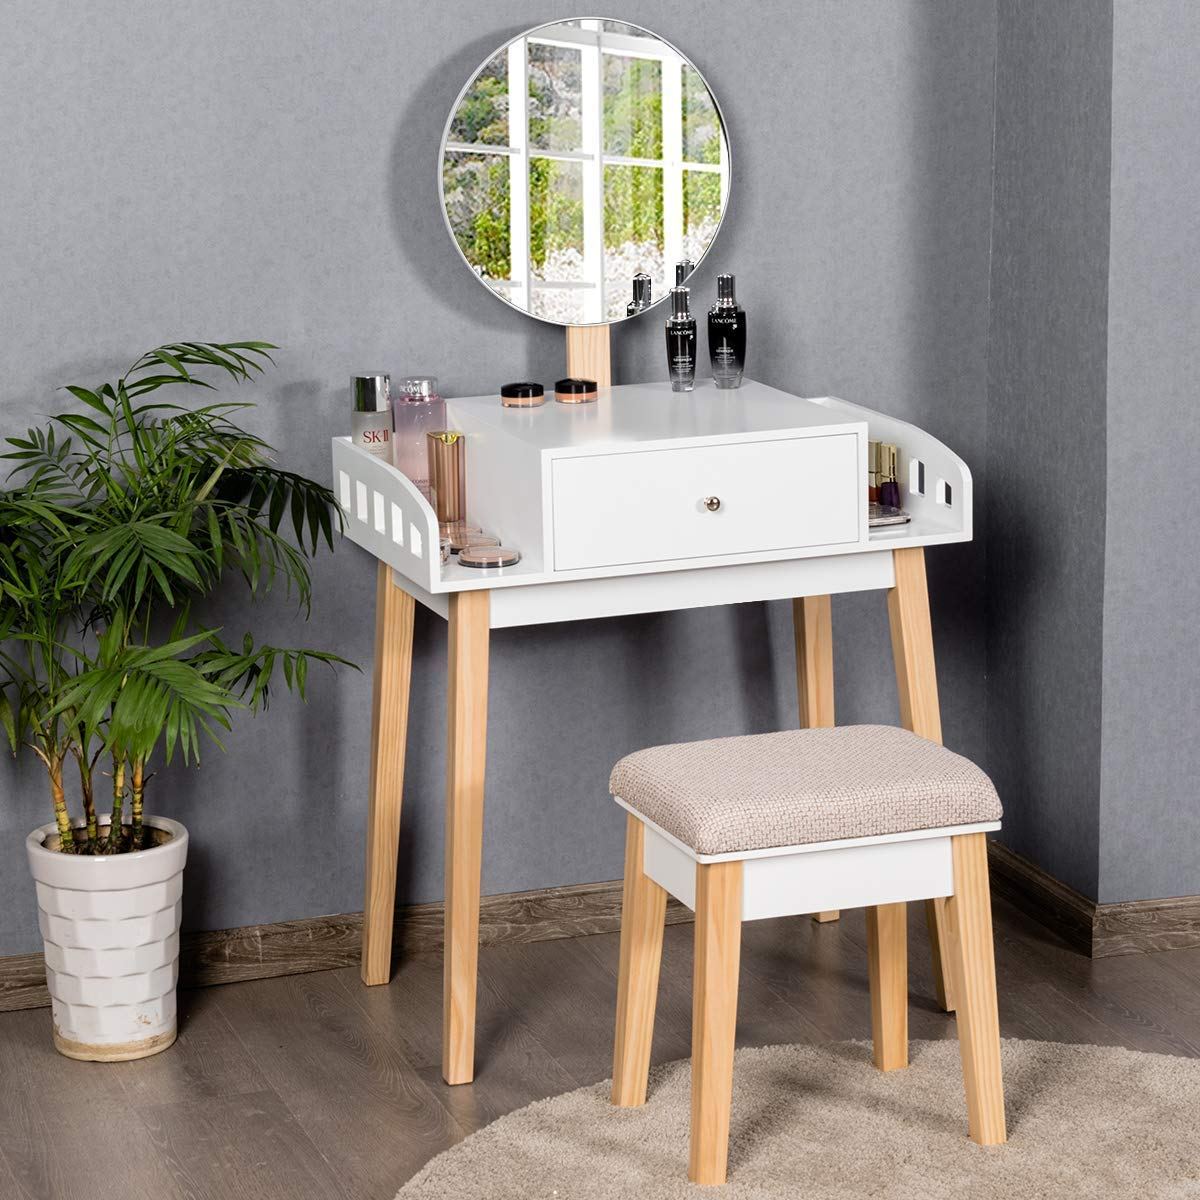 Giantex Vanity Table Set with Height Adjustable Round Mirror, Makeup Mirrored Dressing Table with Cushioned Stool, Side Storage and Large Drawer, Gift Vanities for Women Girls Bedroom White